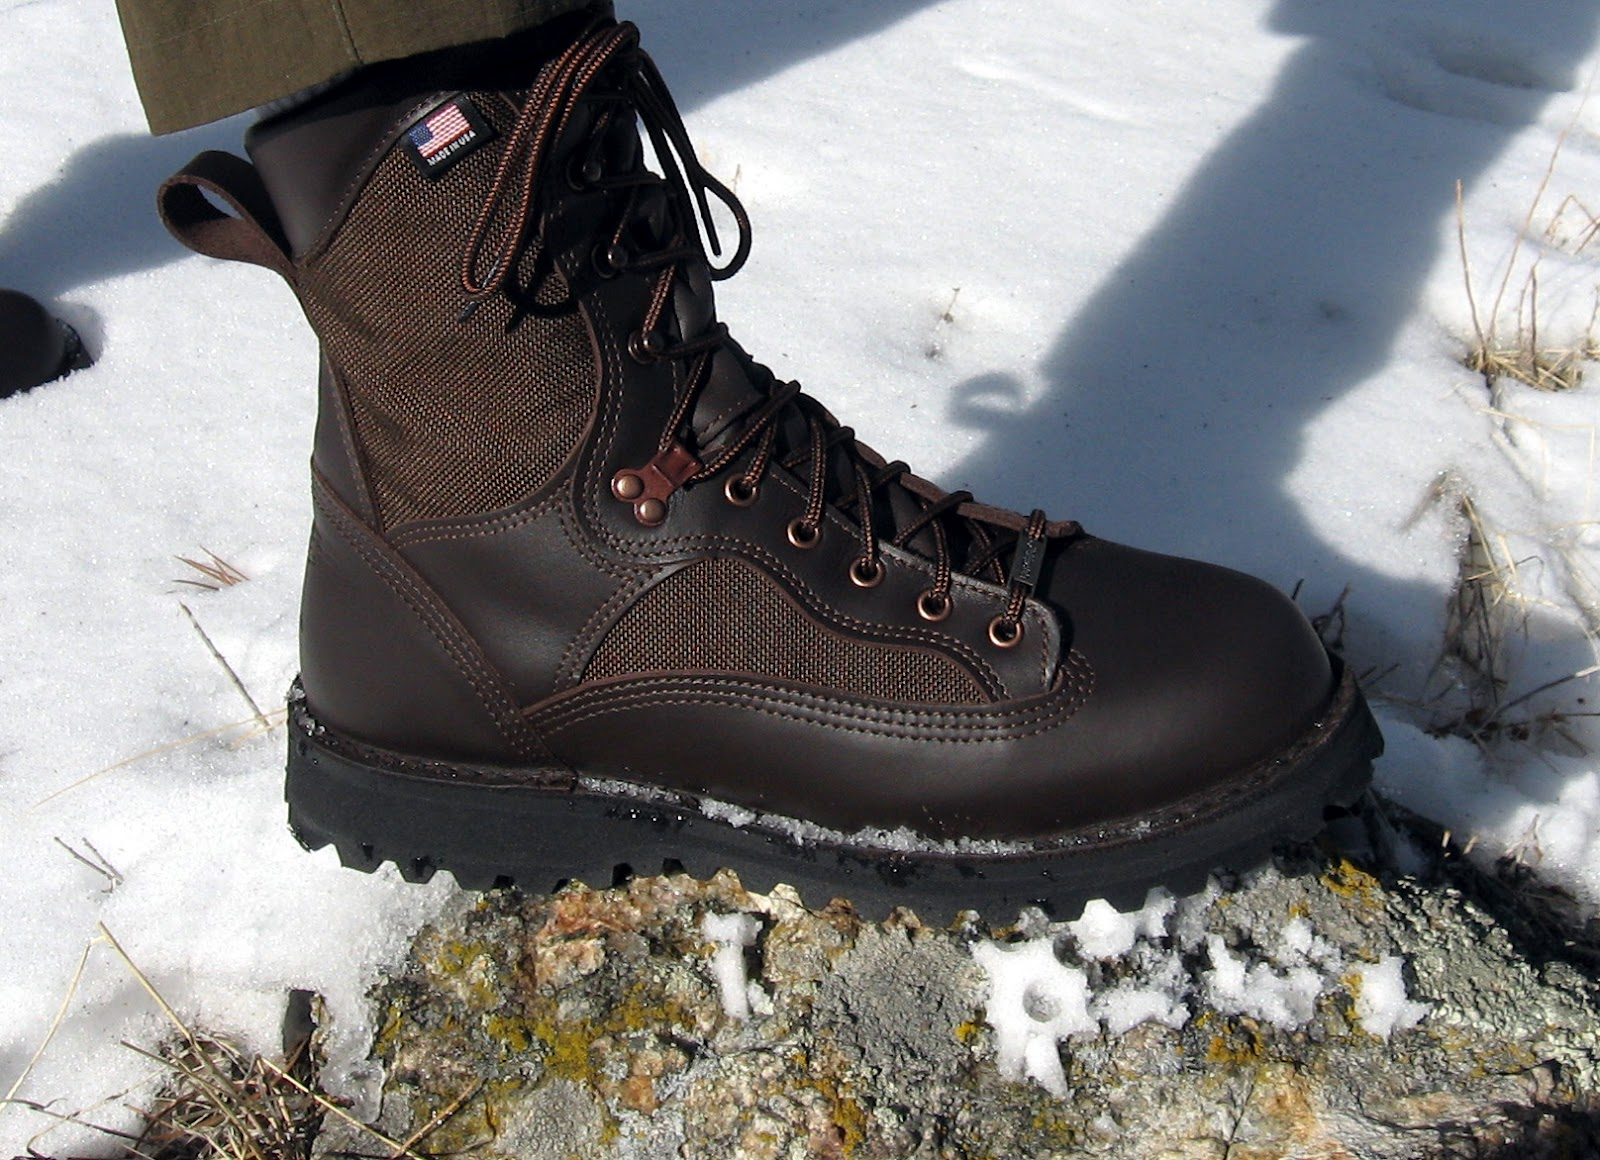 Danner Boots Review 2edZzyrX